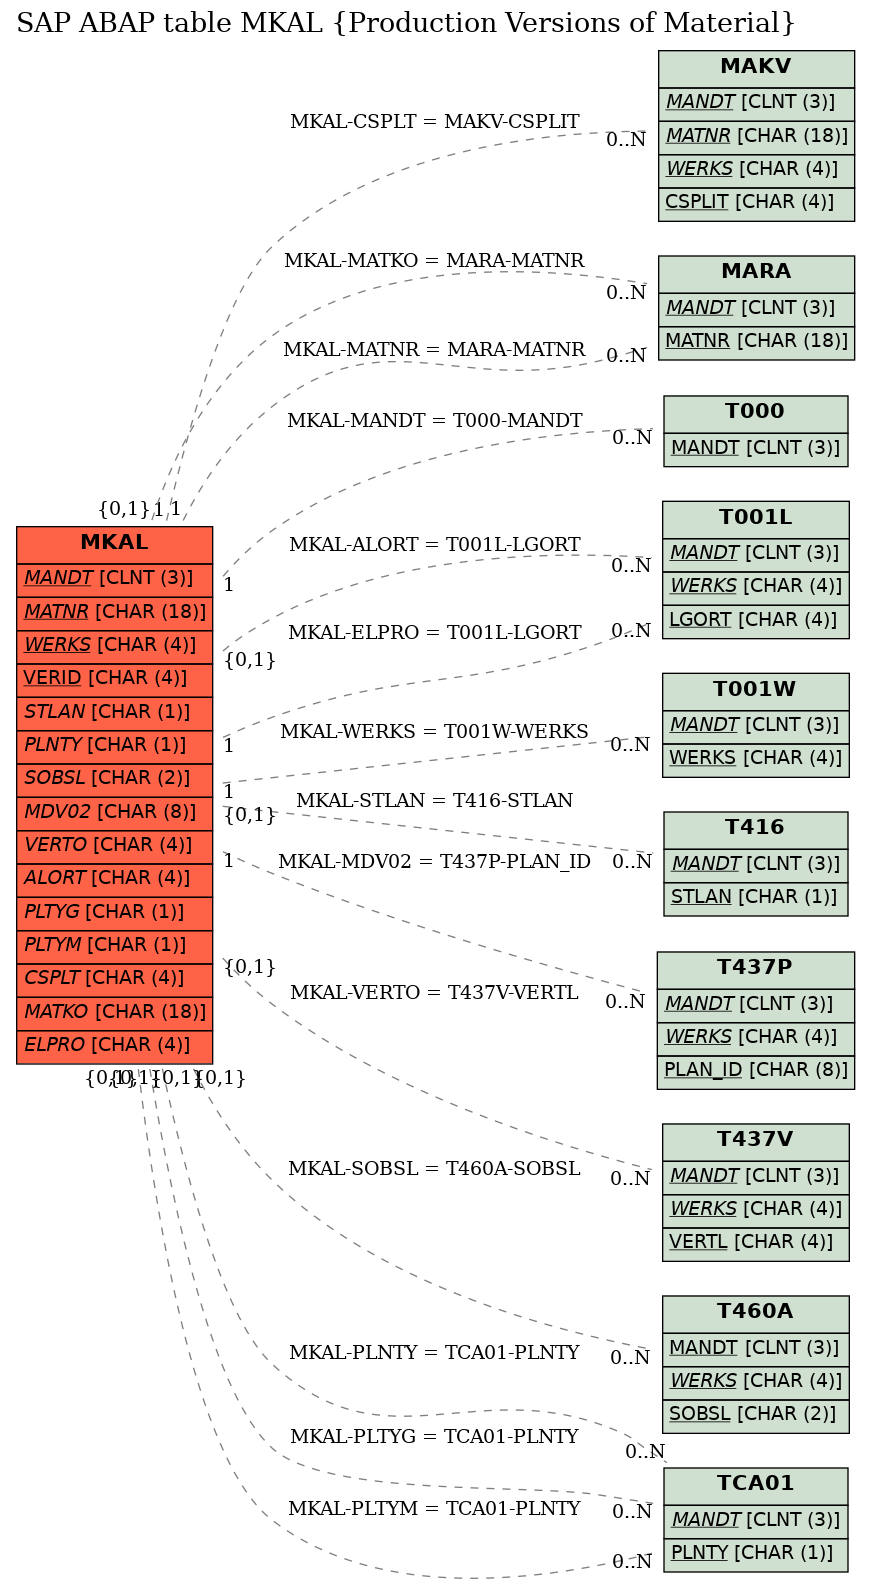 E-R Diagram for table MKAL (Production Versions of Material)